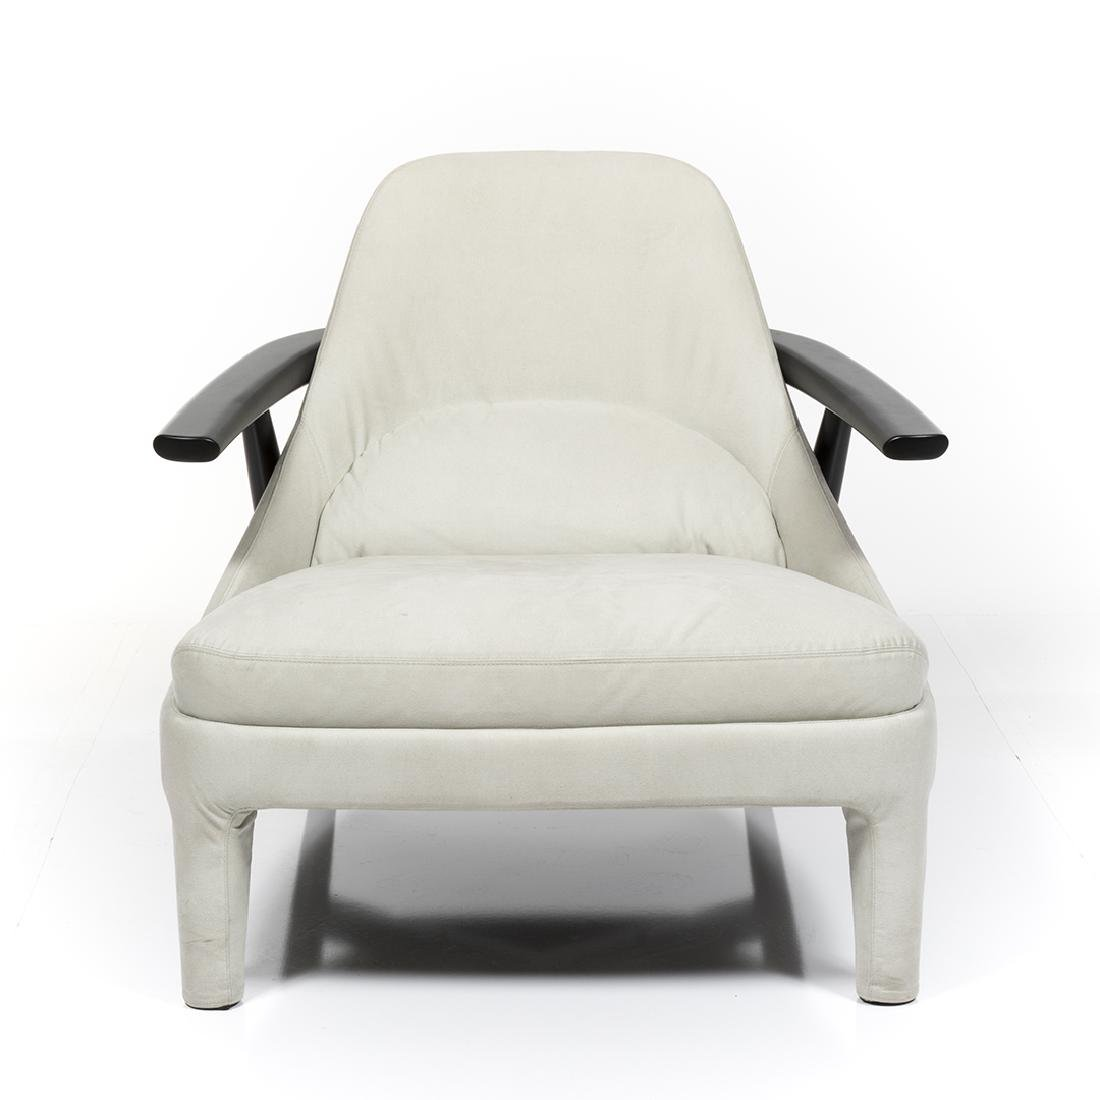 Contempo Brigitte Lounge Chair - 2